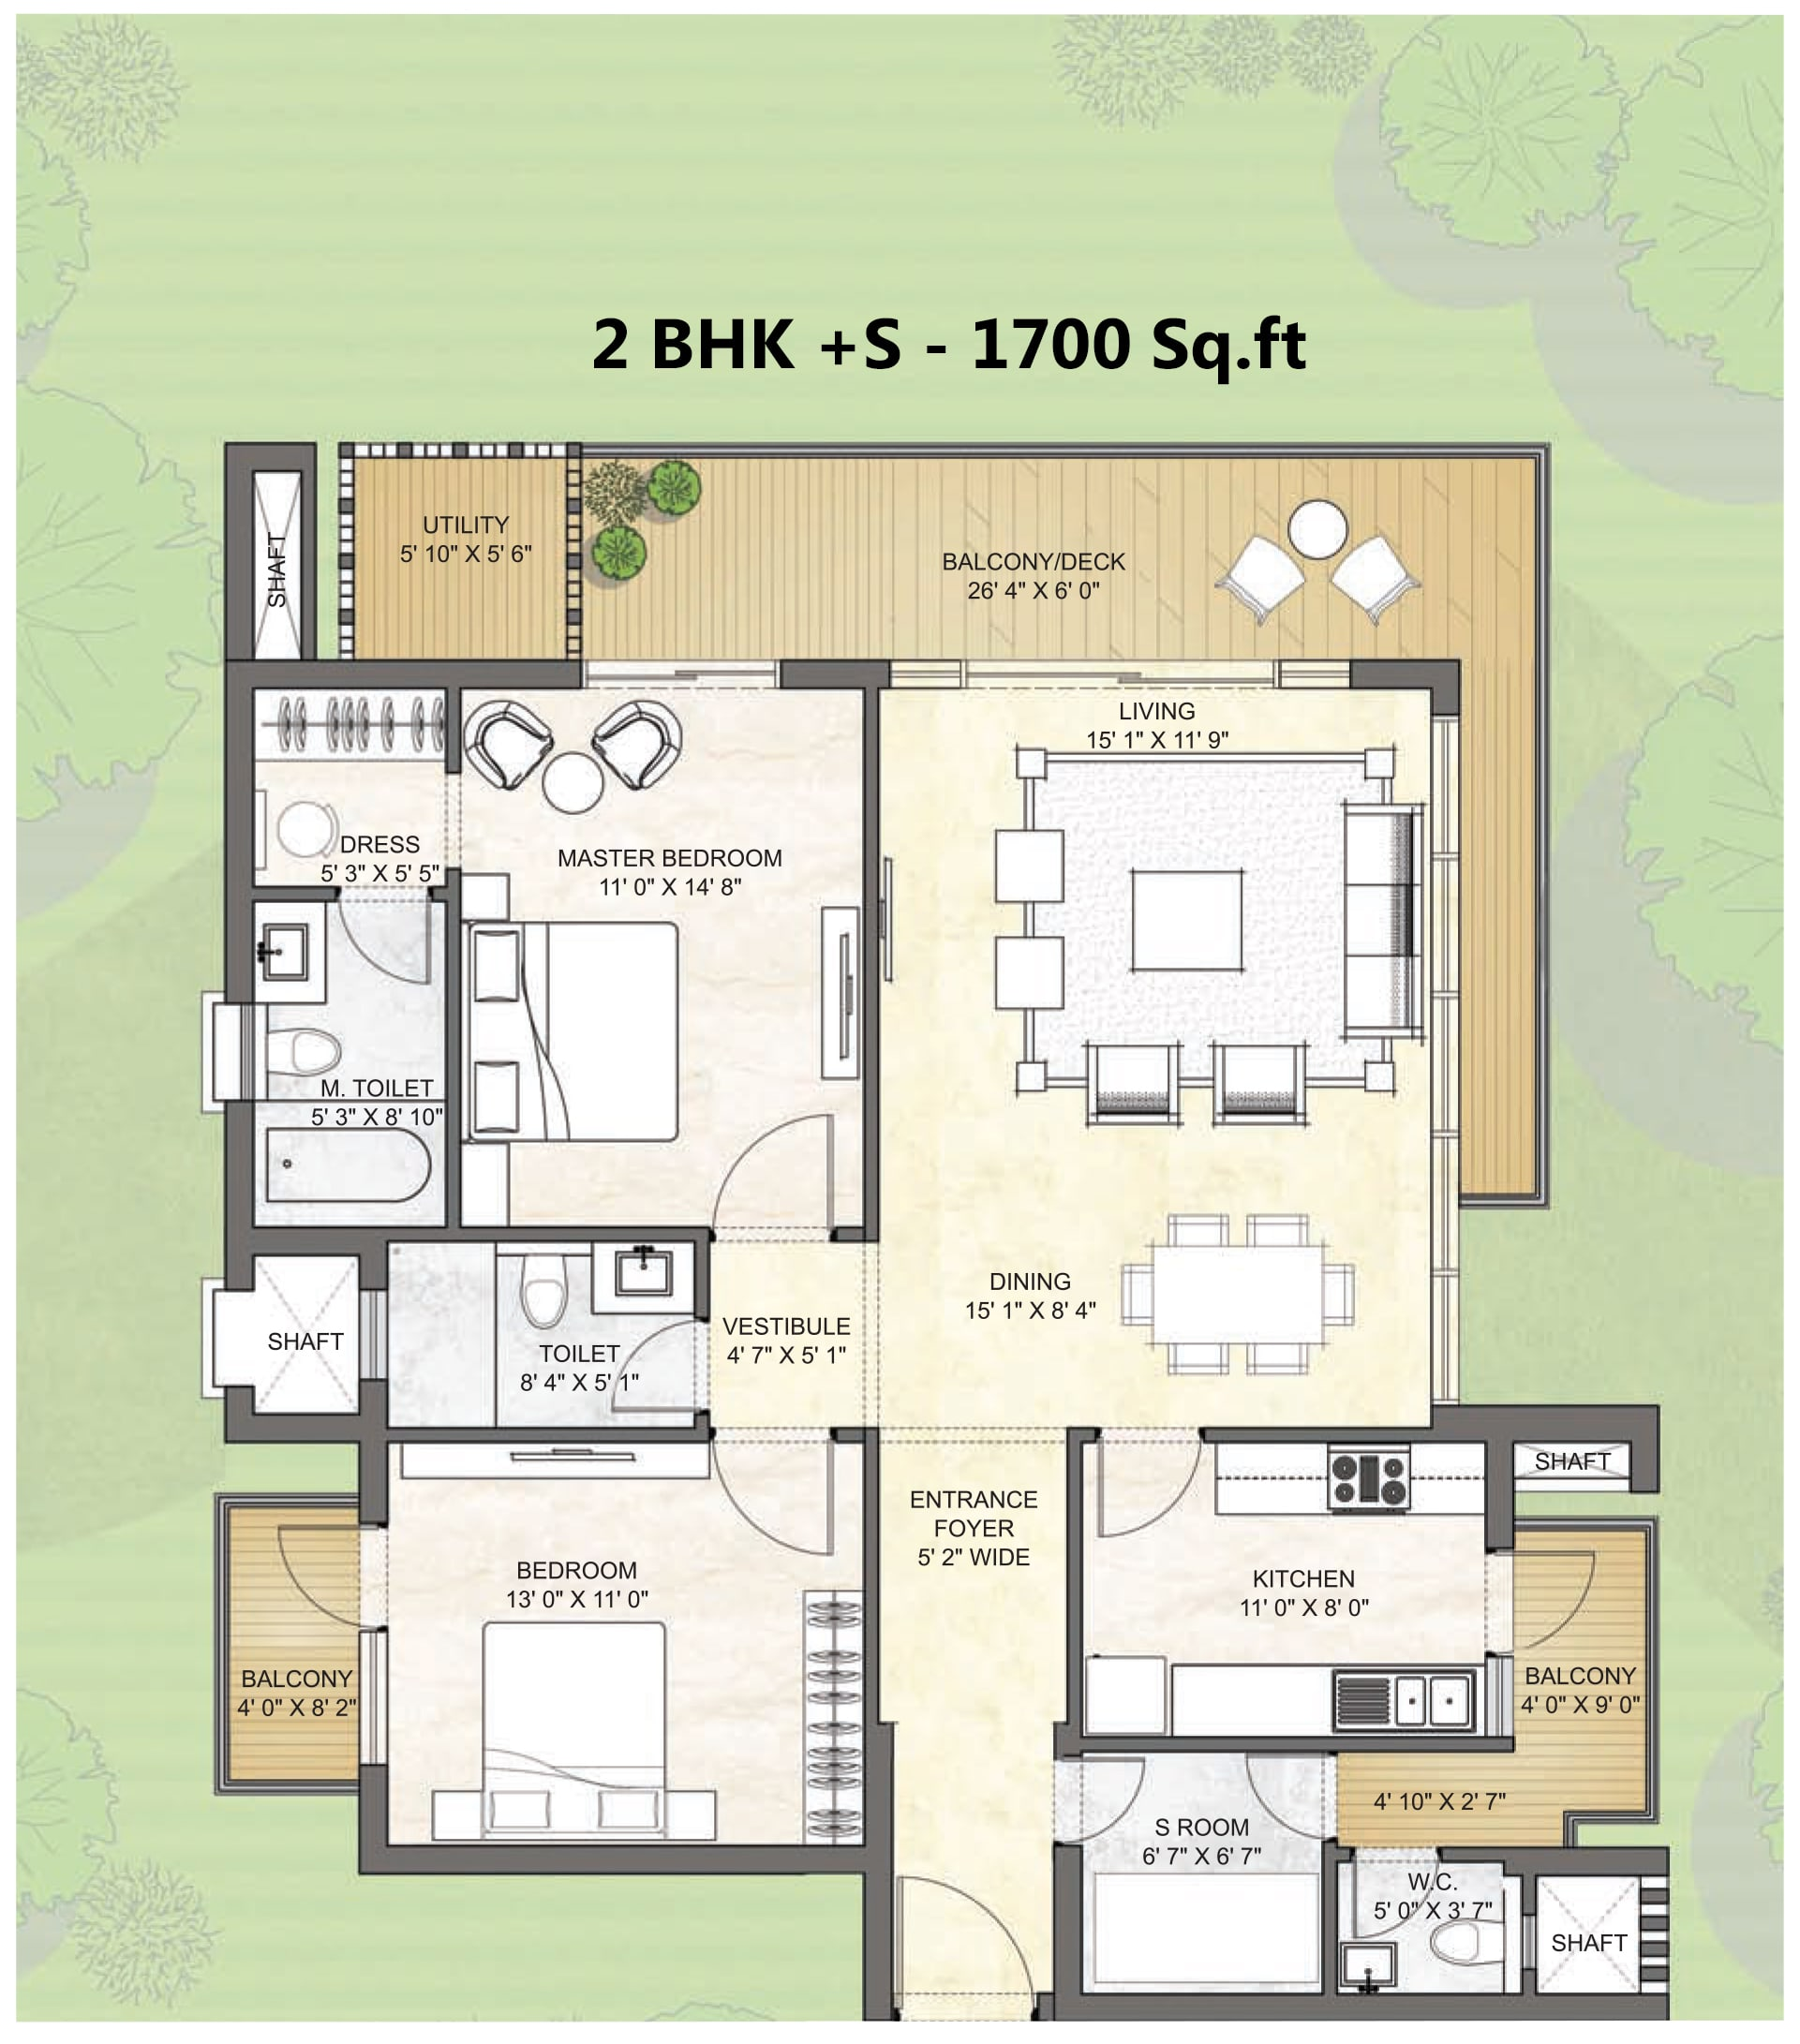 2BHK +S -1700 Sq.Ft